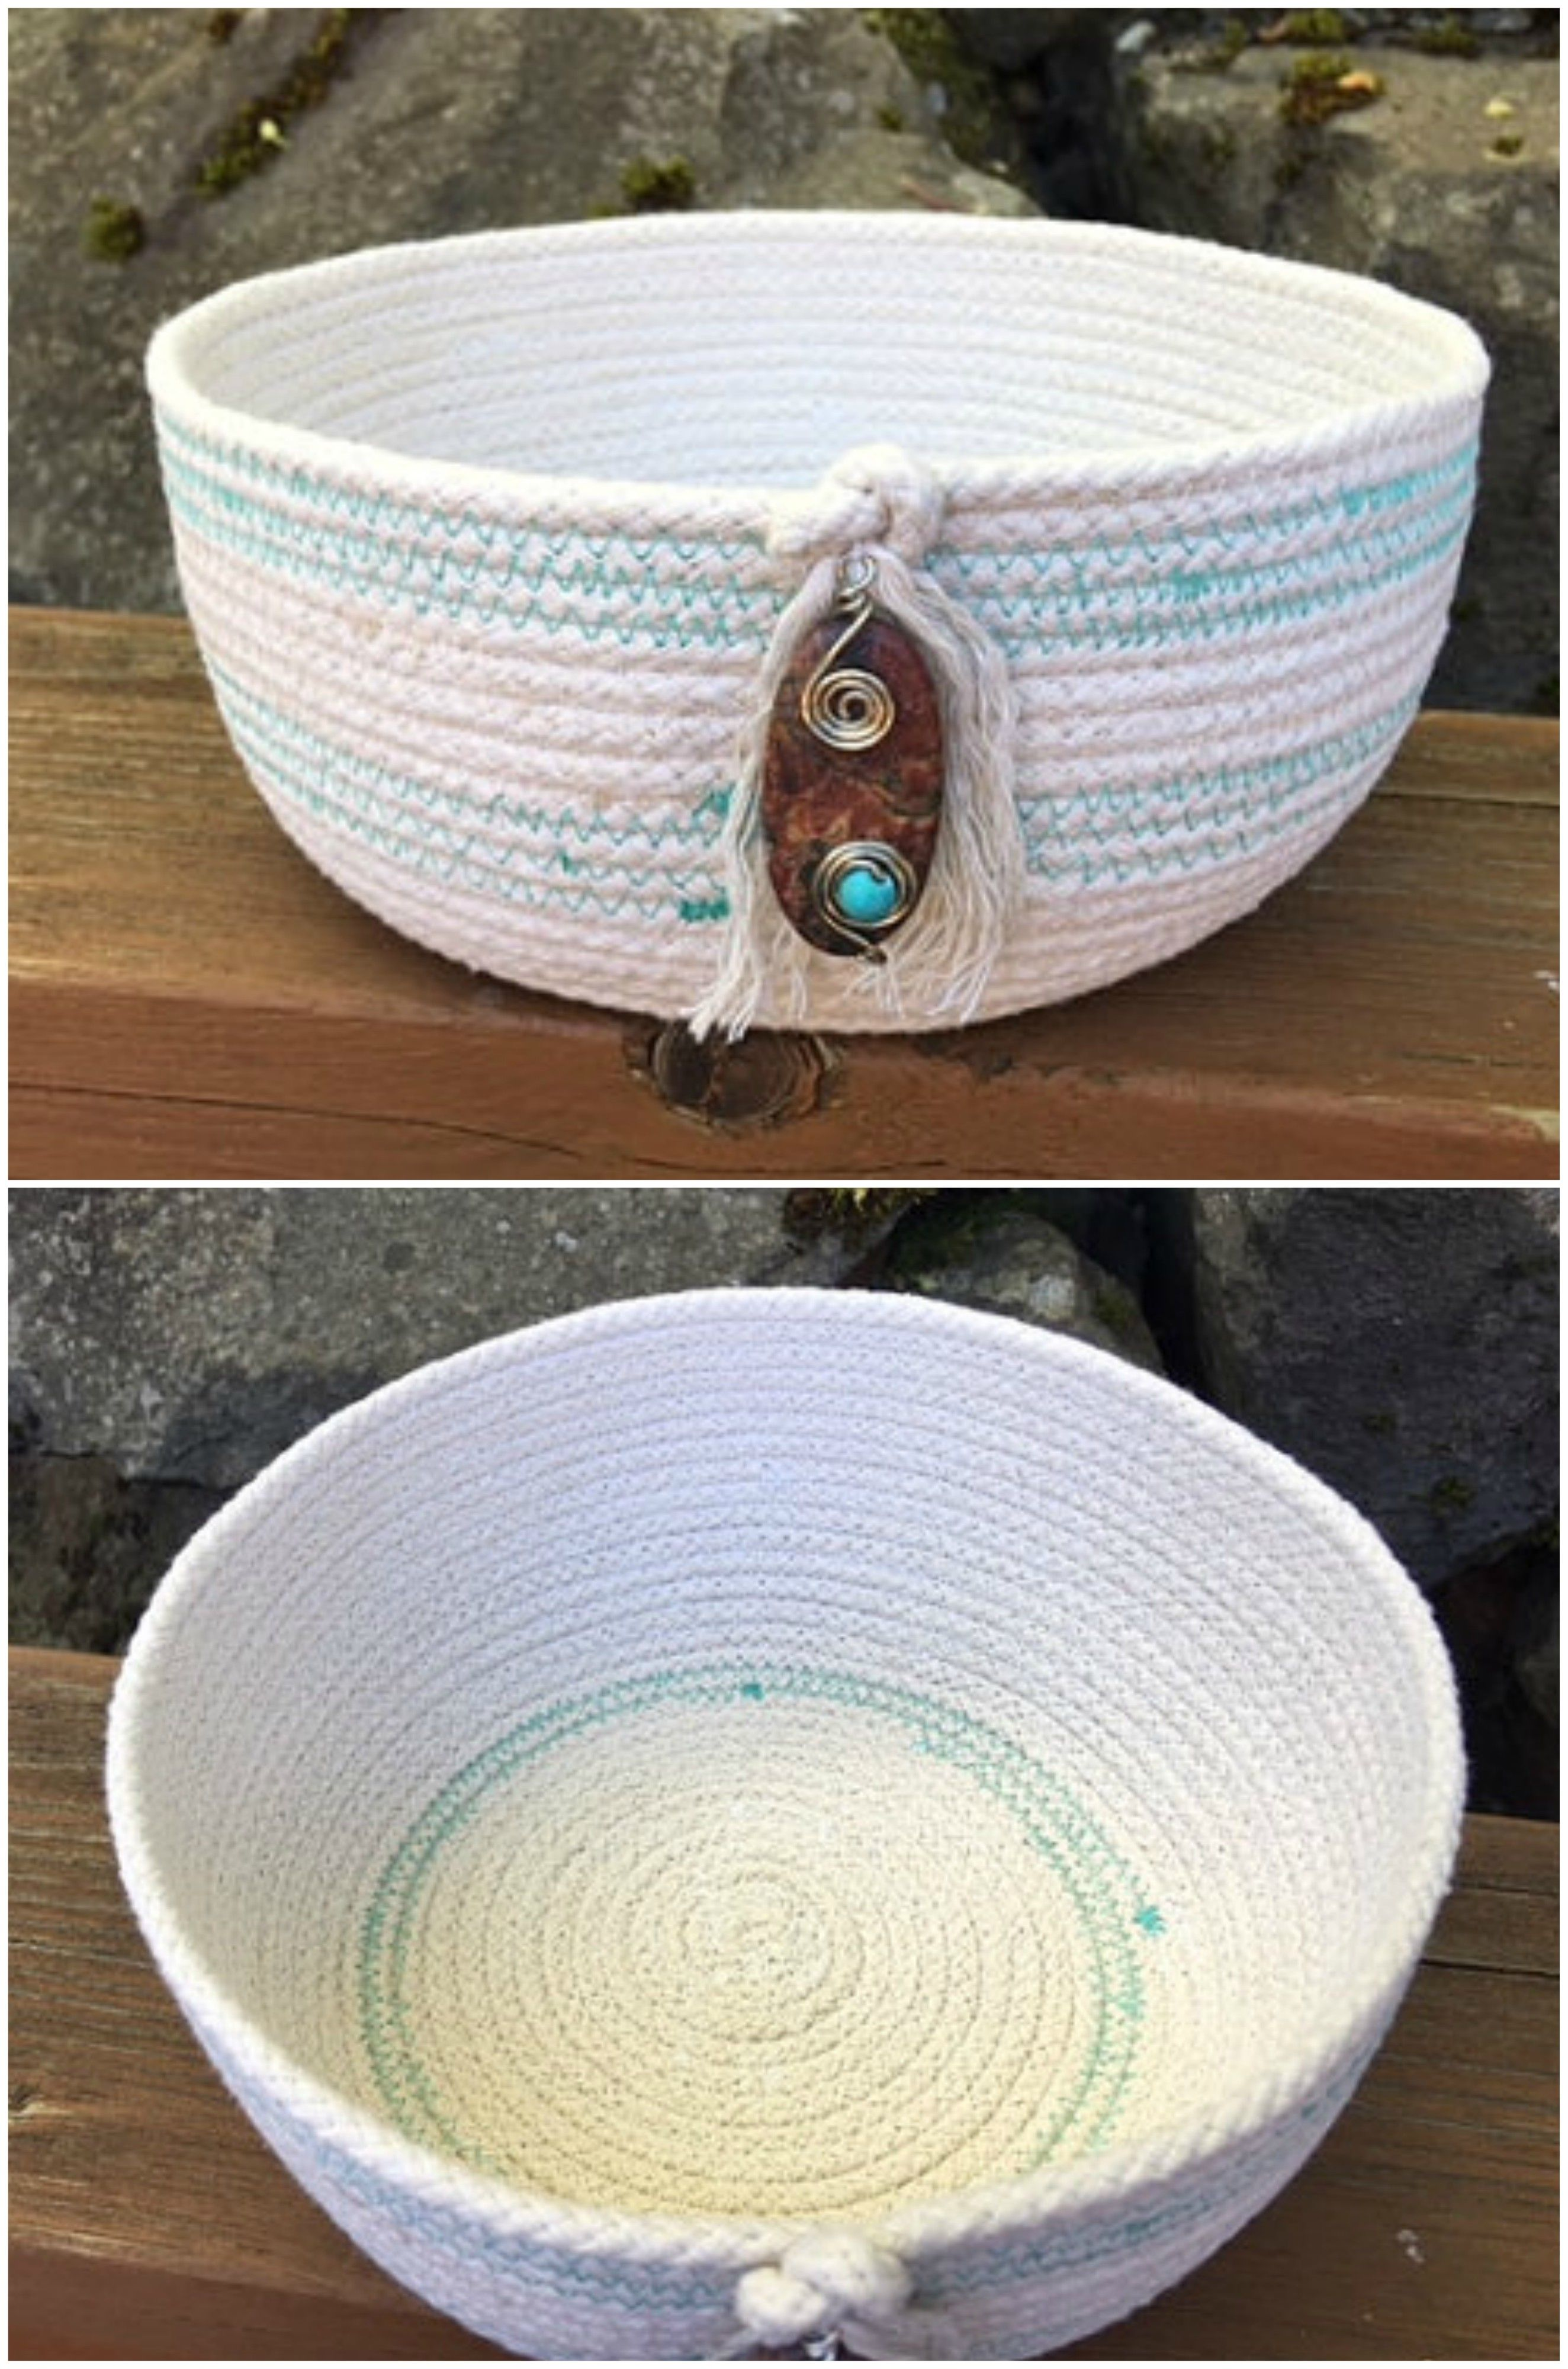 Gorgeous Coiled Rope Basket is just perfect for your farmhouse decor.  See this and other hand coiled baskets by Whippoorwill Valley here      https://www.etsy.com/shop/WhippoorwillValley/items?section_id=17232590